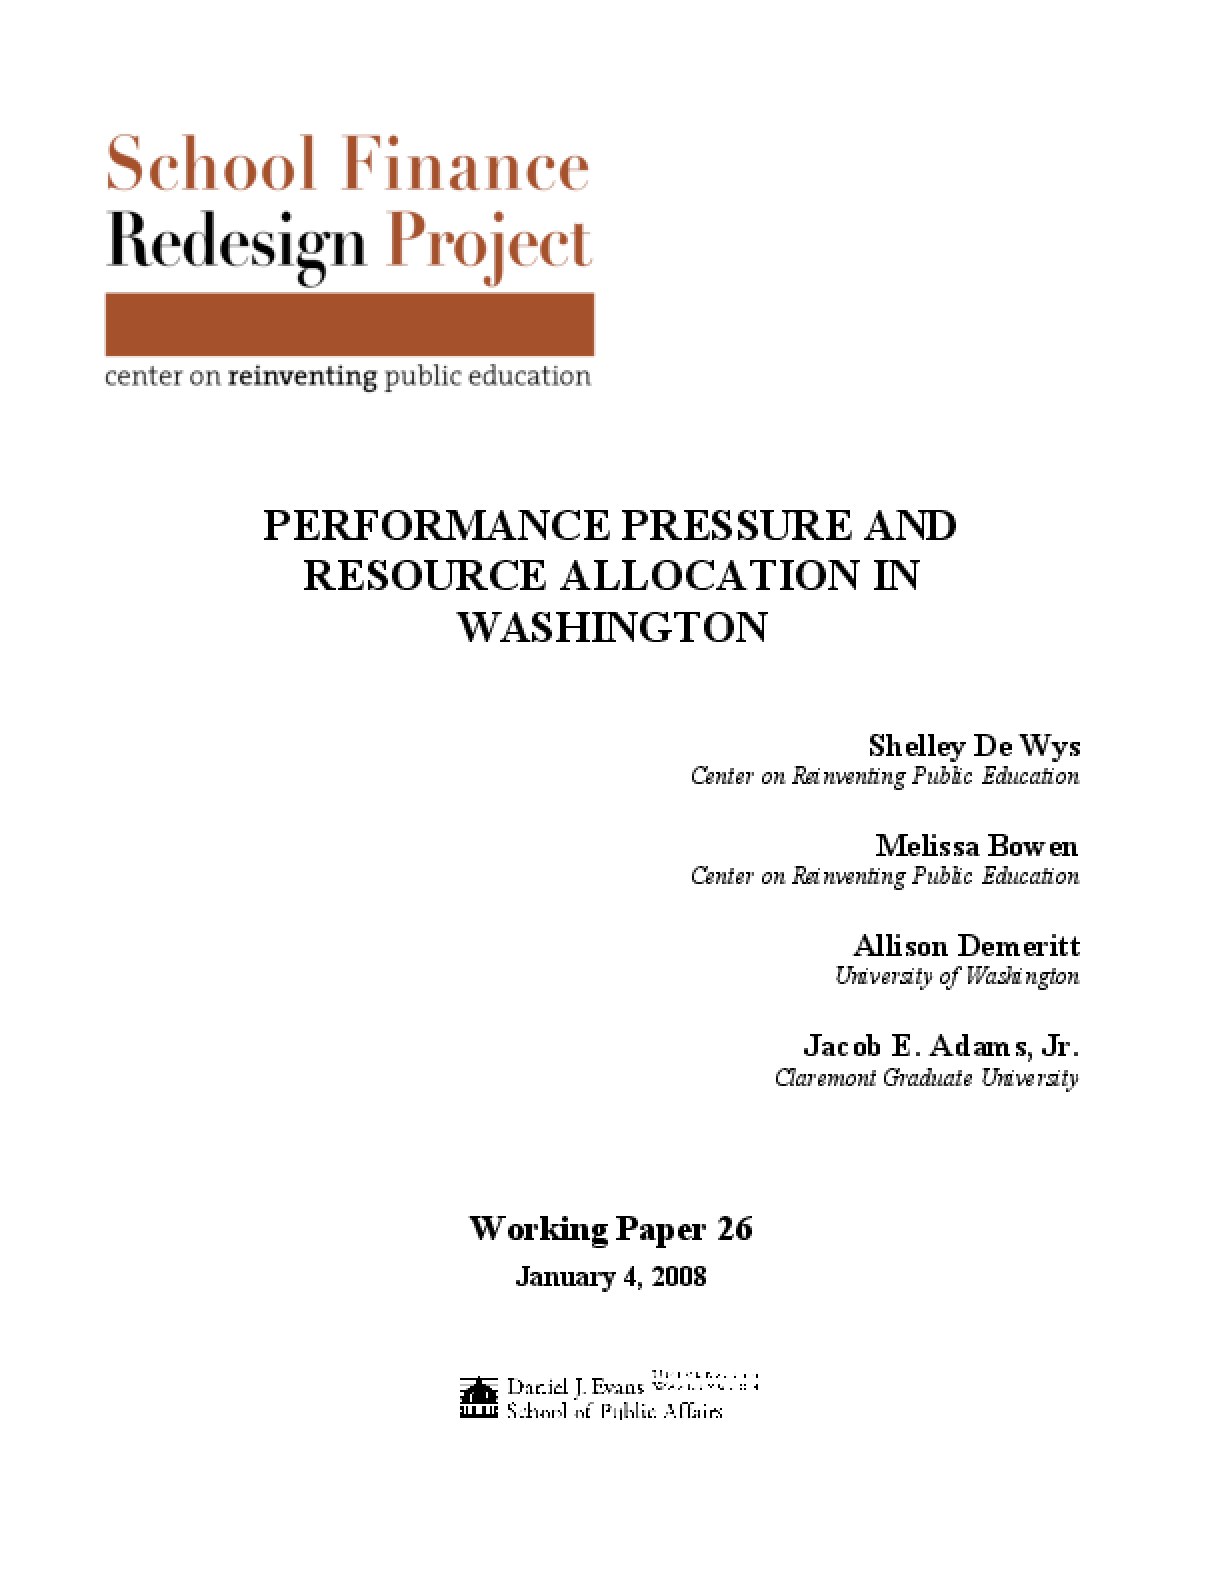 Performance Pressure and Resource Allocation in Washington